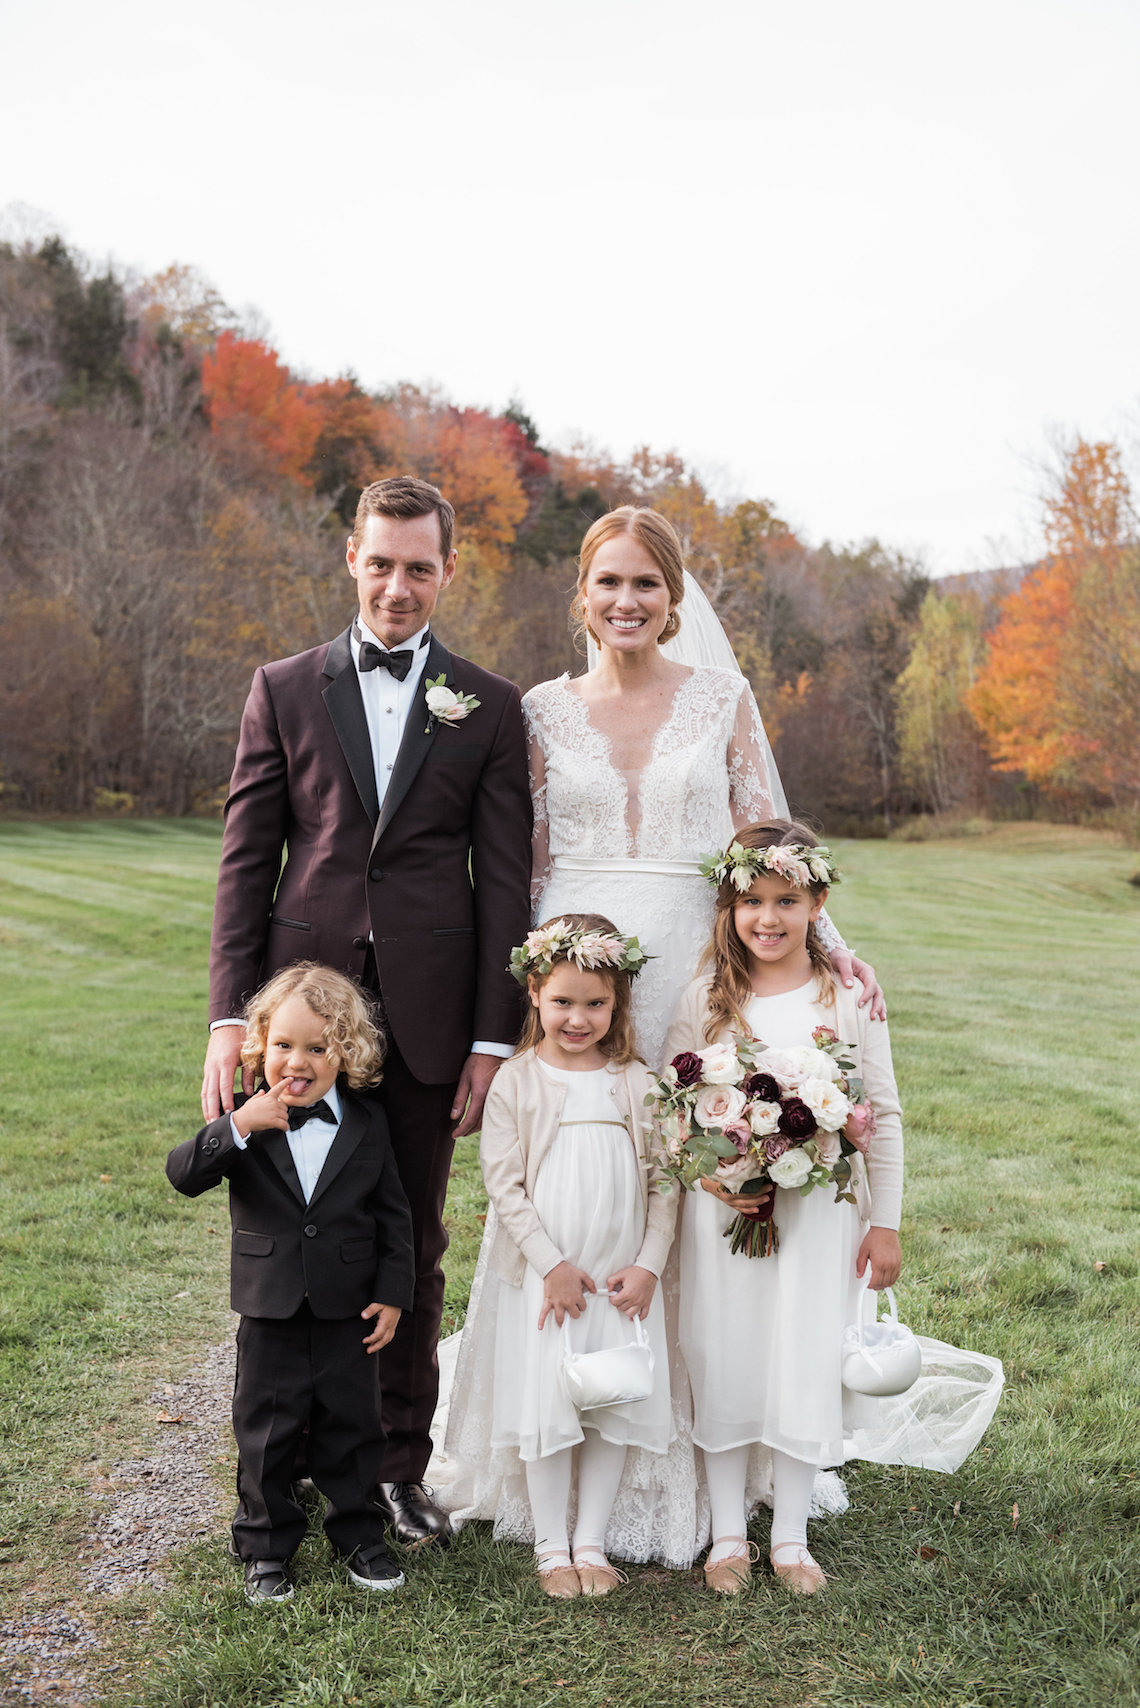 Warm Fall Catskills Wedding With Ceremony Sparklers – Christina Lilly Photography – Buds of Brooklyn 44